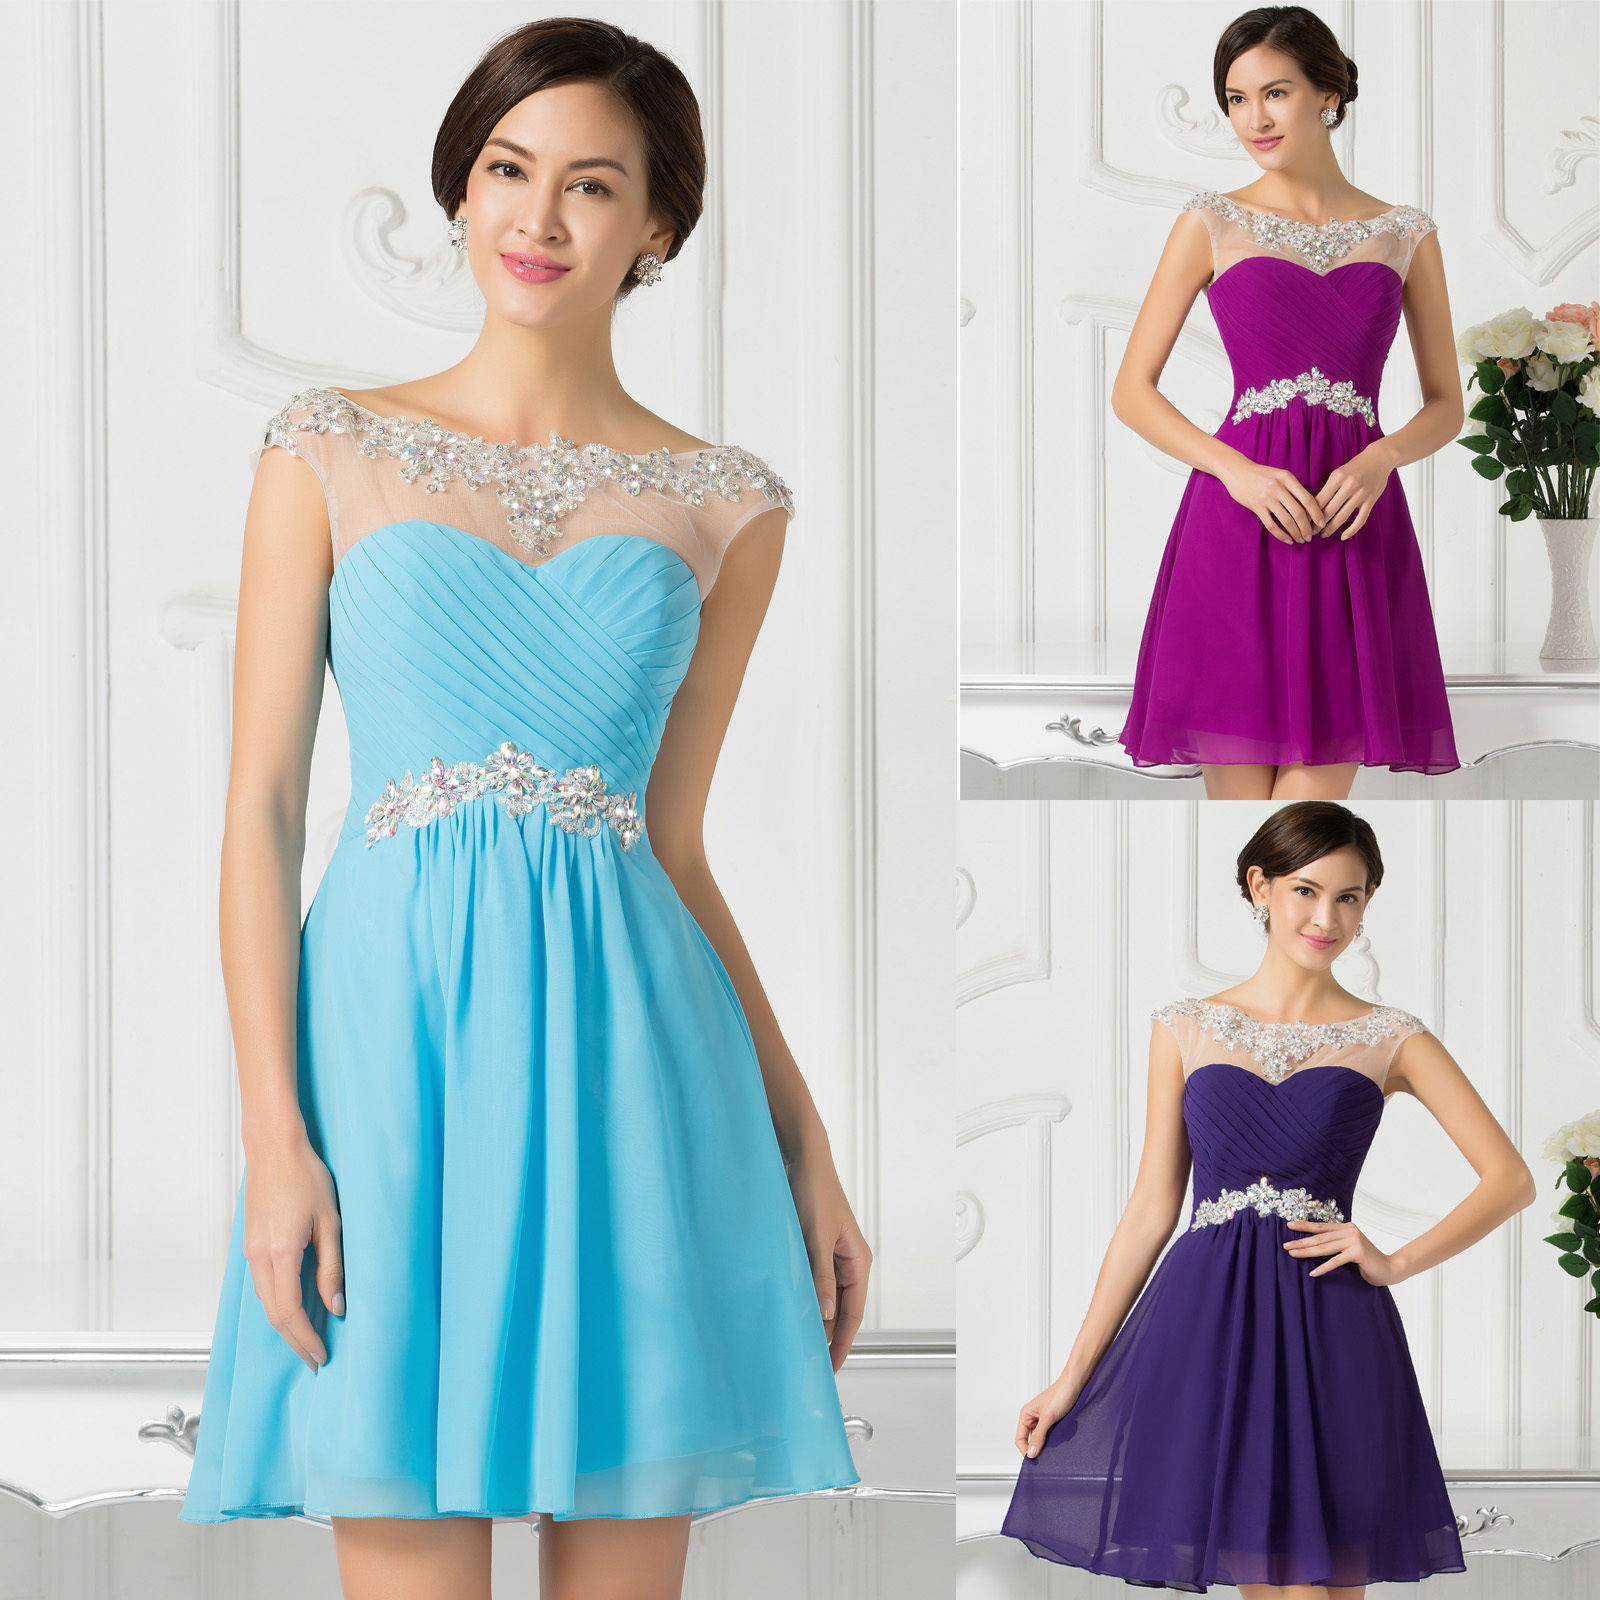 2015 Sexy Beading Short Dresses Bridesmaid Evening Party Prom Gown Wedding  Dress on Luulla 094eca9f7